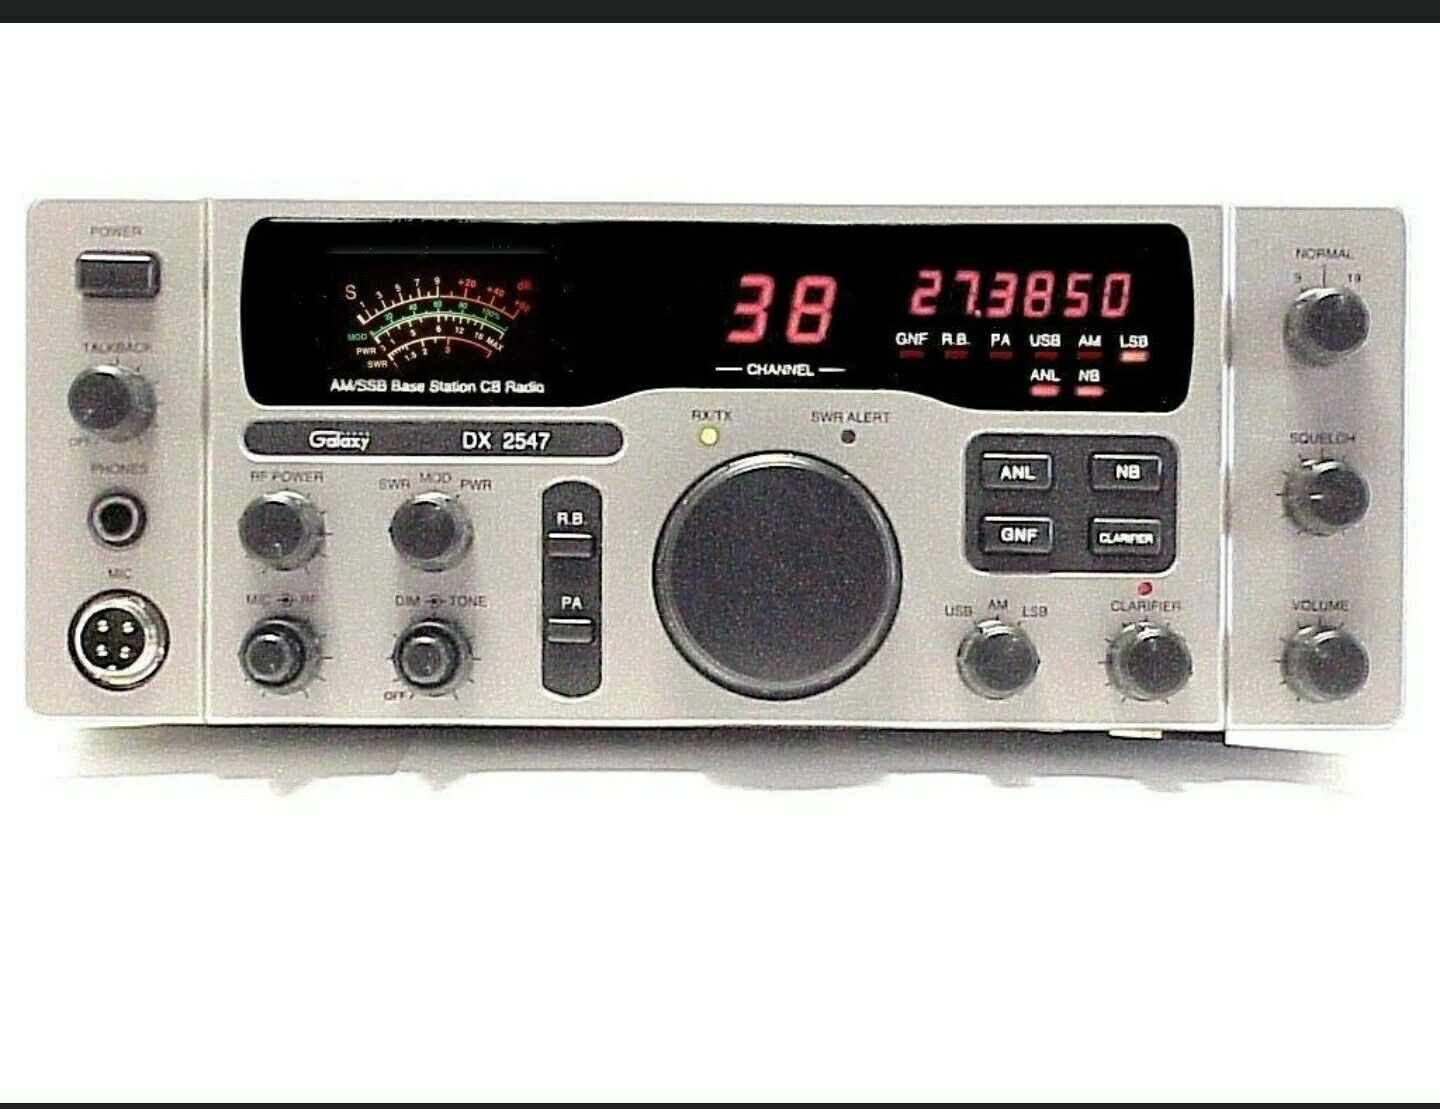 NEW Galaxy DX2547 CB RADIO BASE STATION. AM and SSB.. Buy it now for 399.00